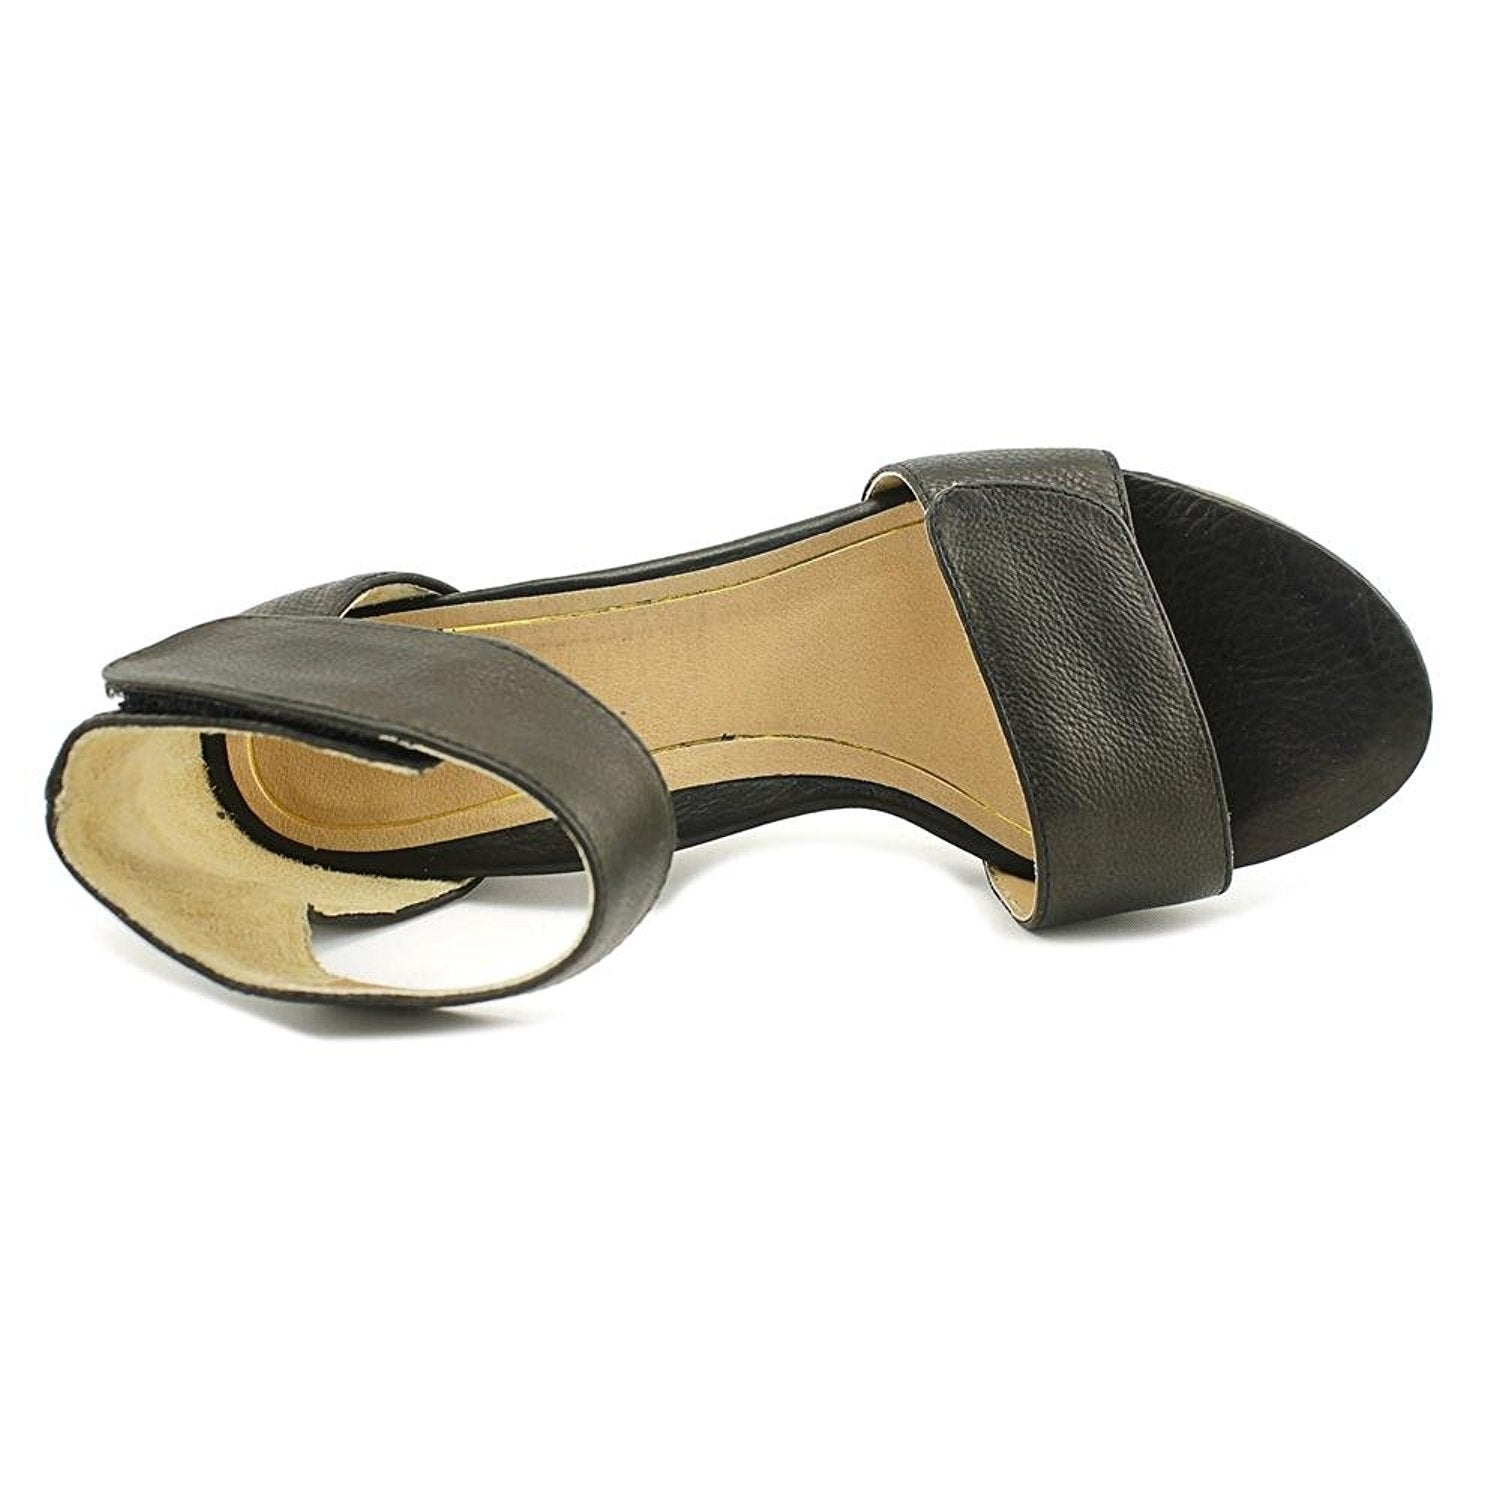 b4259561f614 Shop Vionic Women s Solana Arch Support Dress Sandal - Free Shipping Today  - Overstock - 19863963